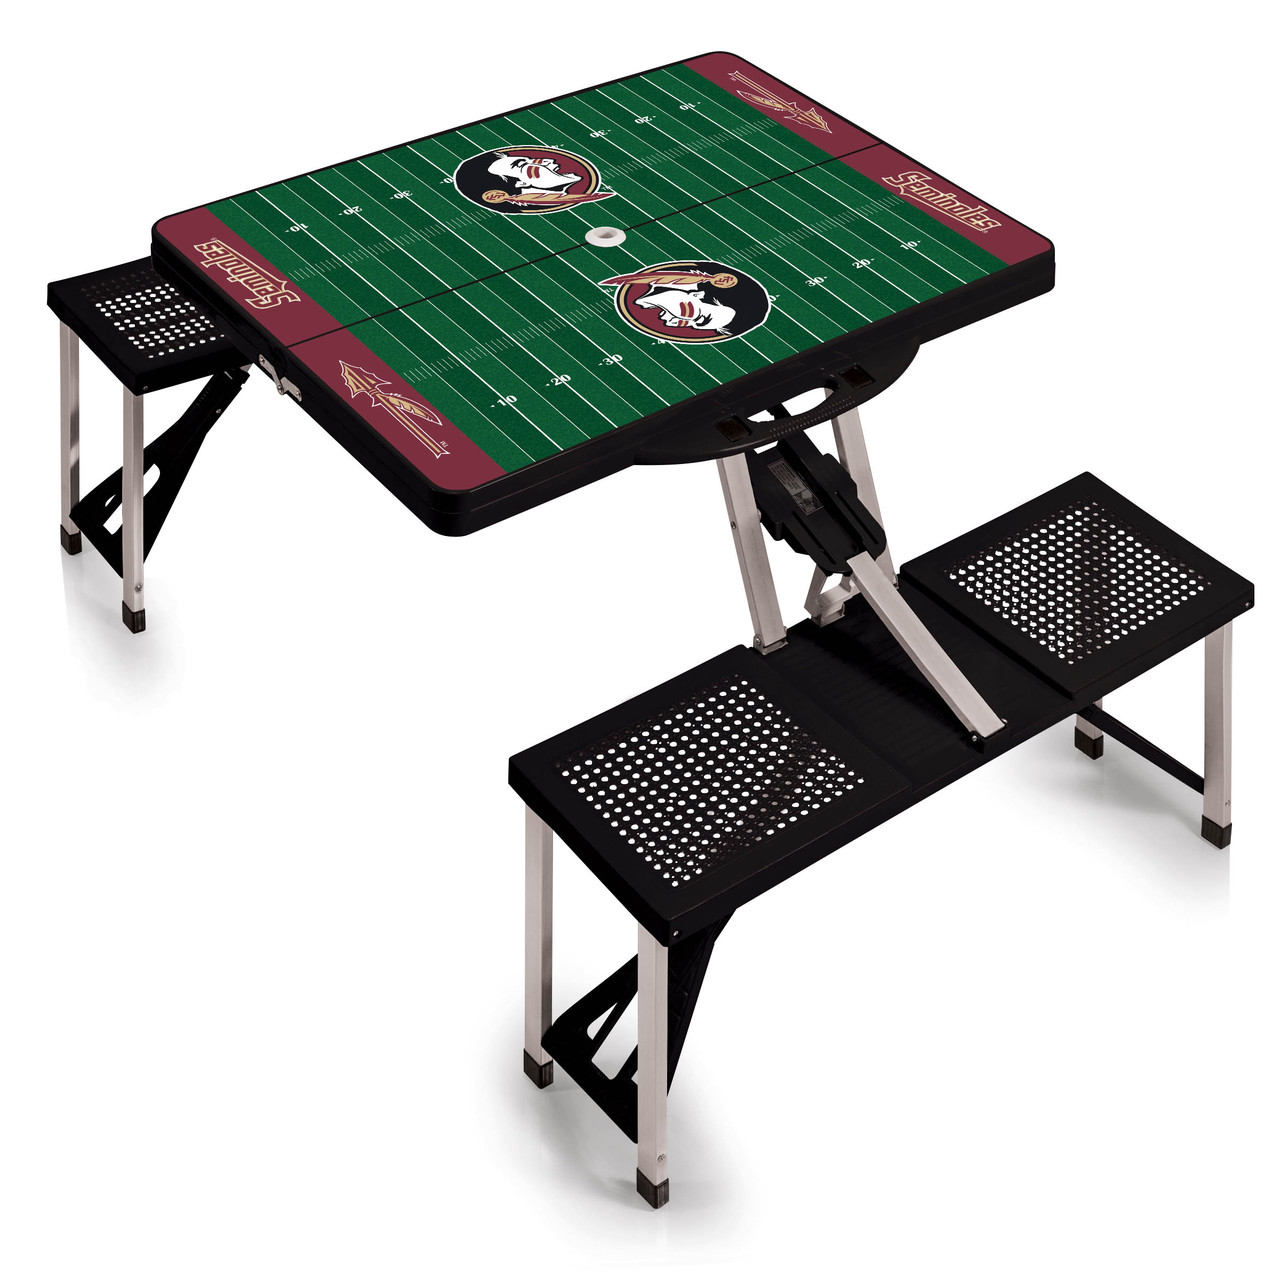 Picnic Table Sport - Florida State